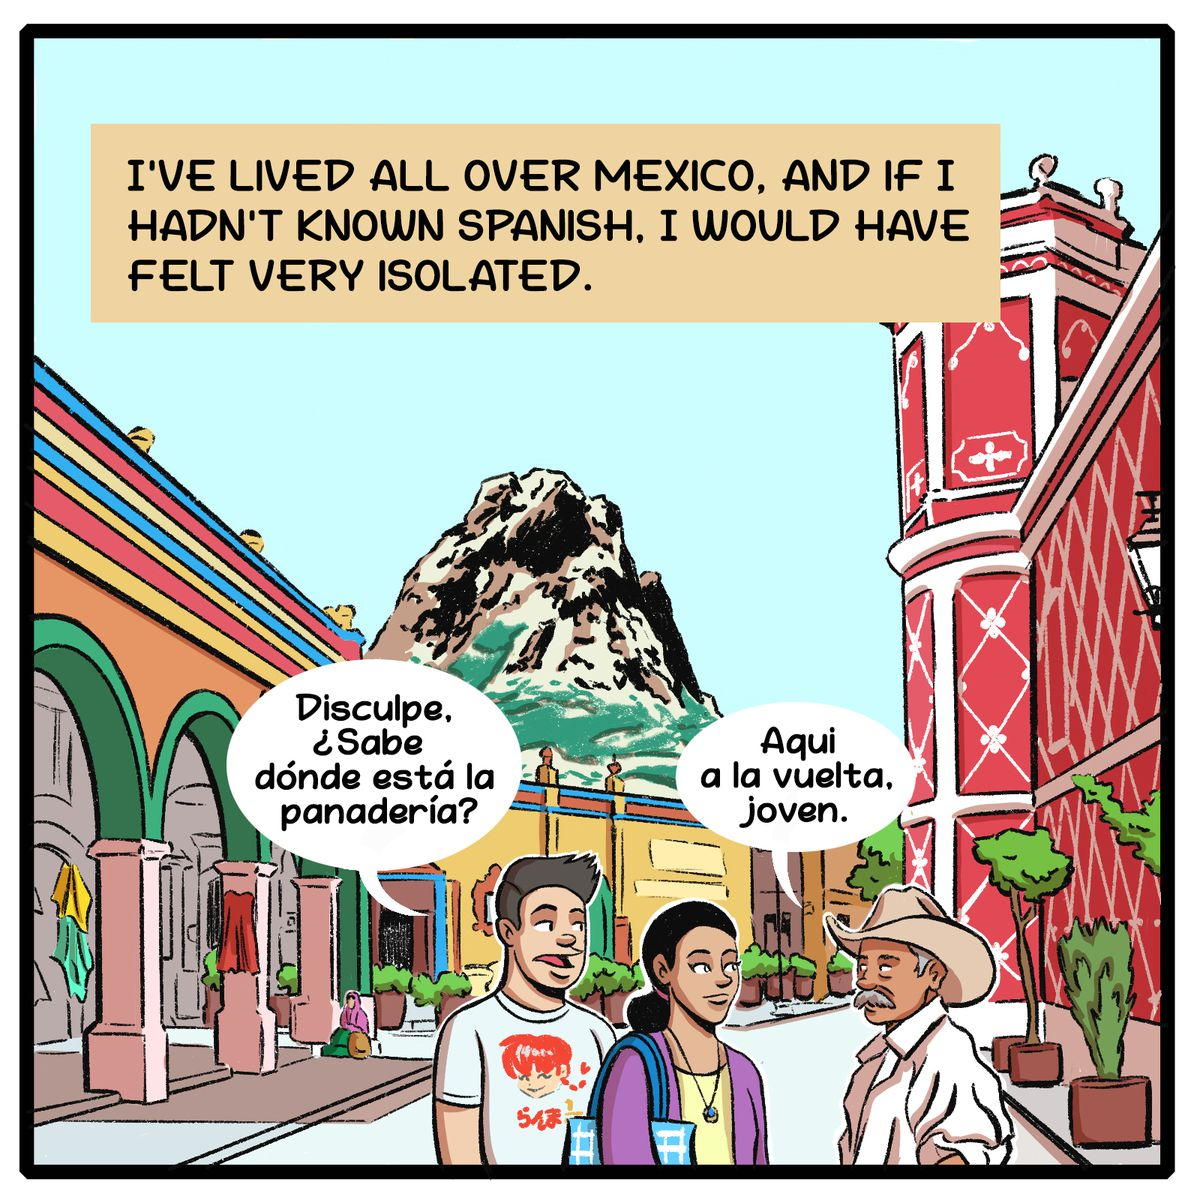 I've lived all over Mexico, and if I hadn't known Spanish, I would have felt very isolated.